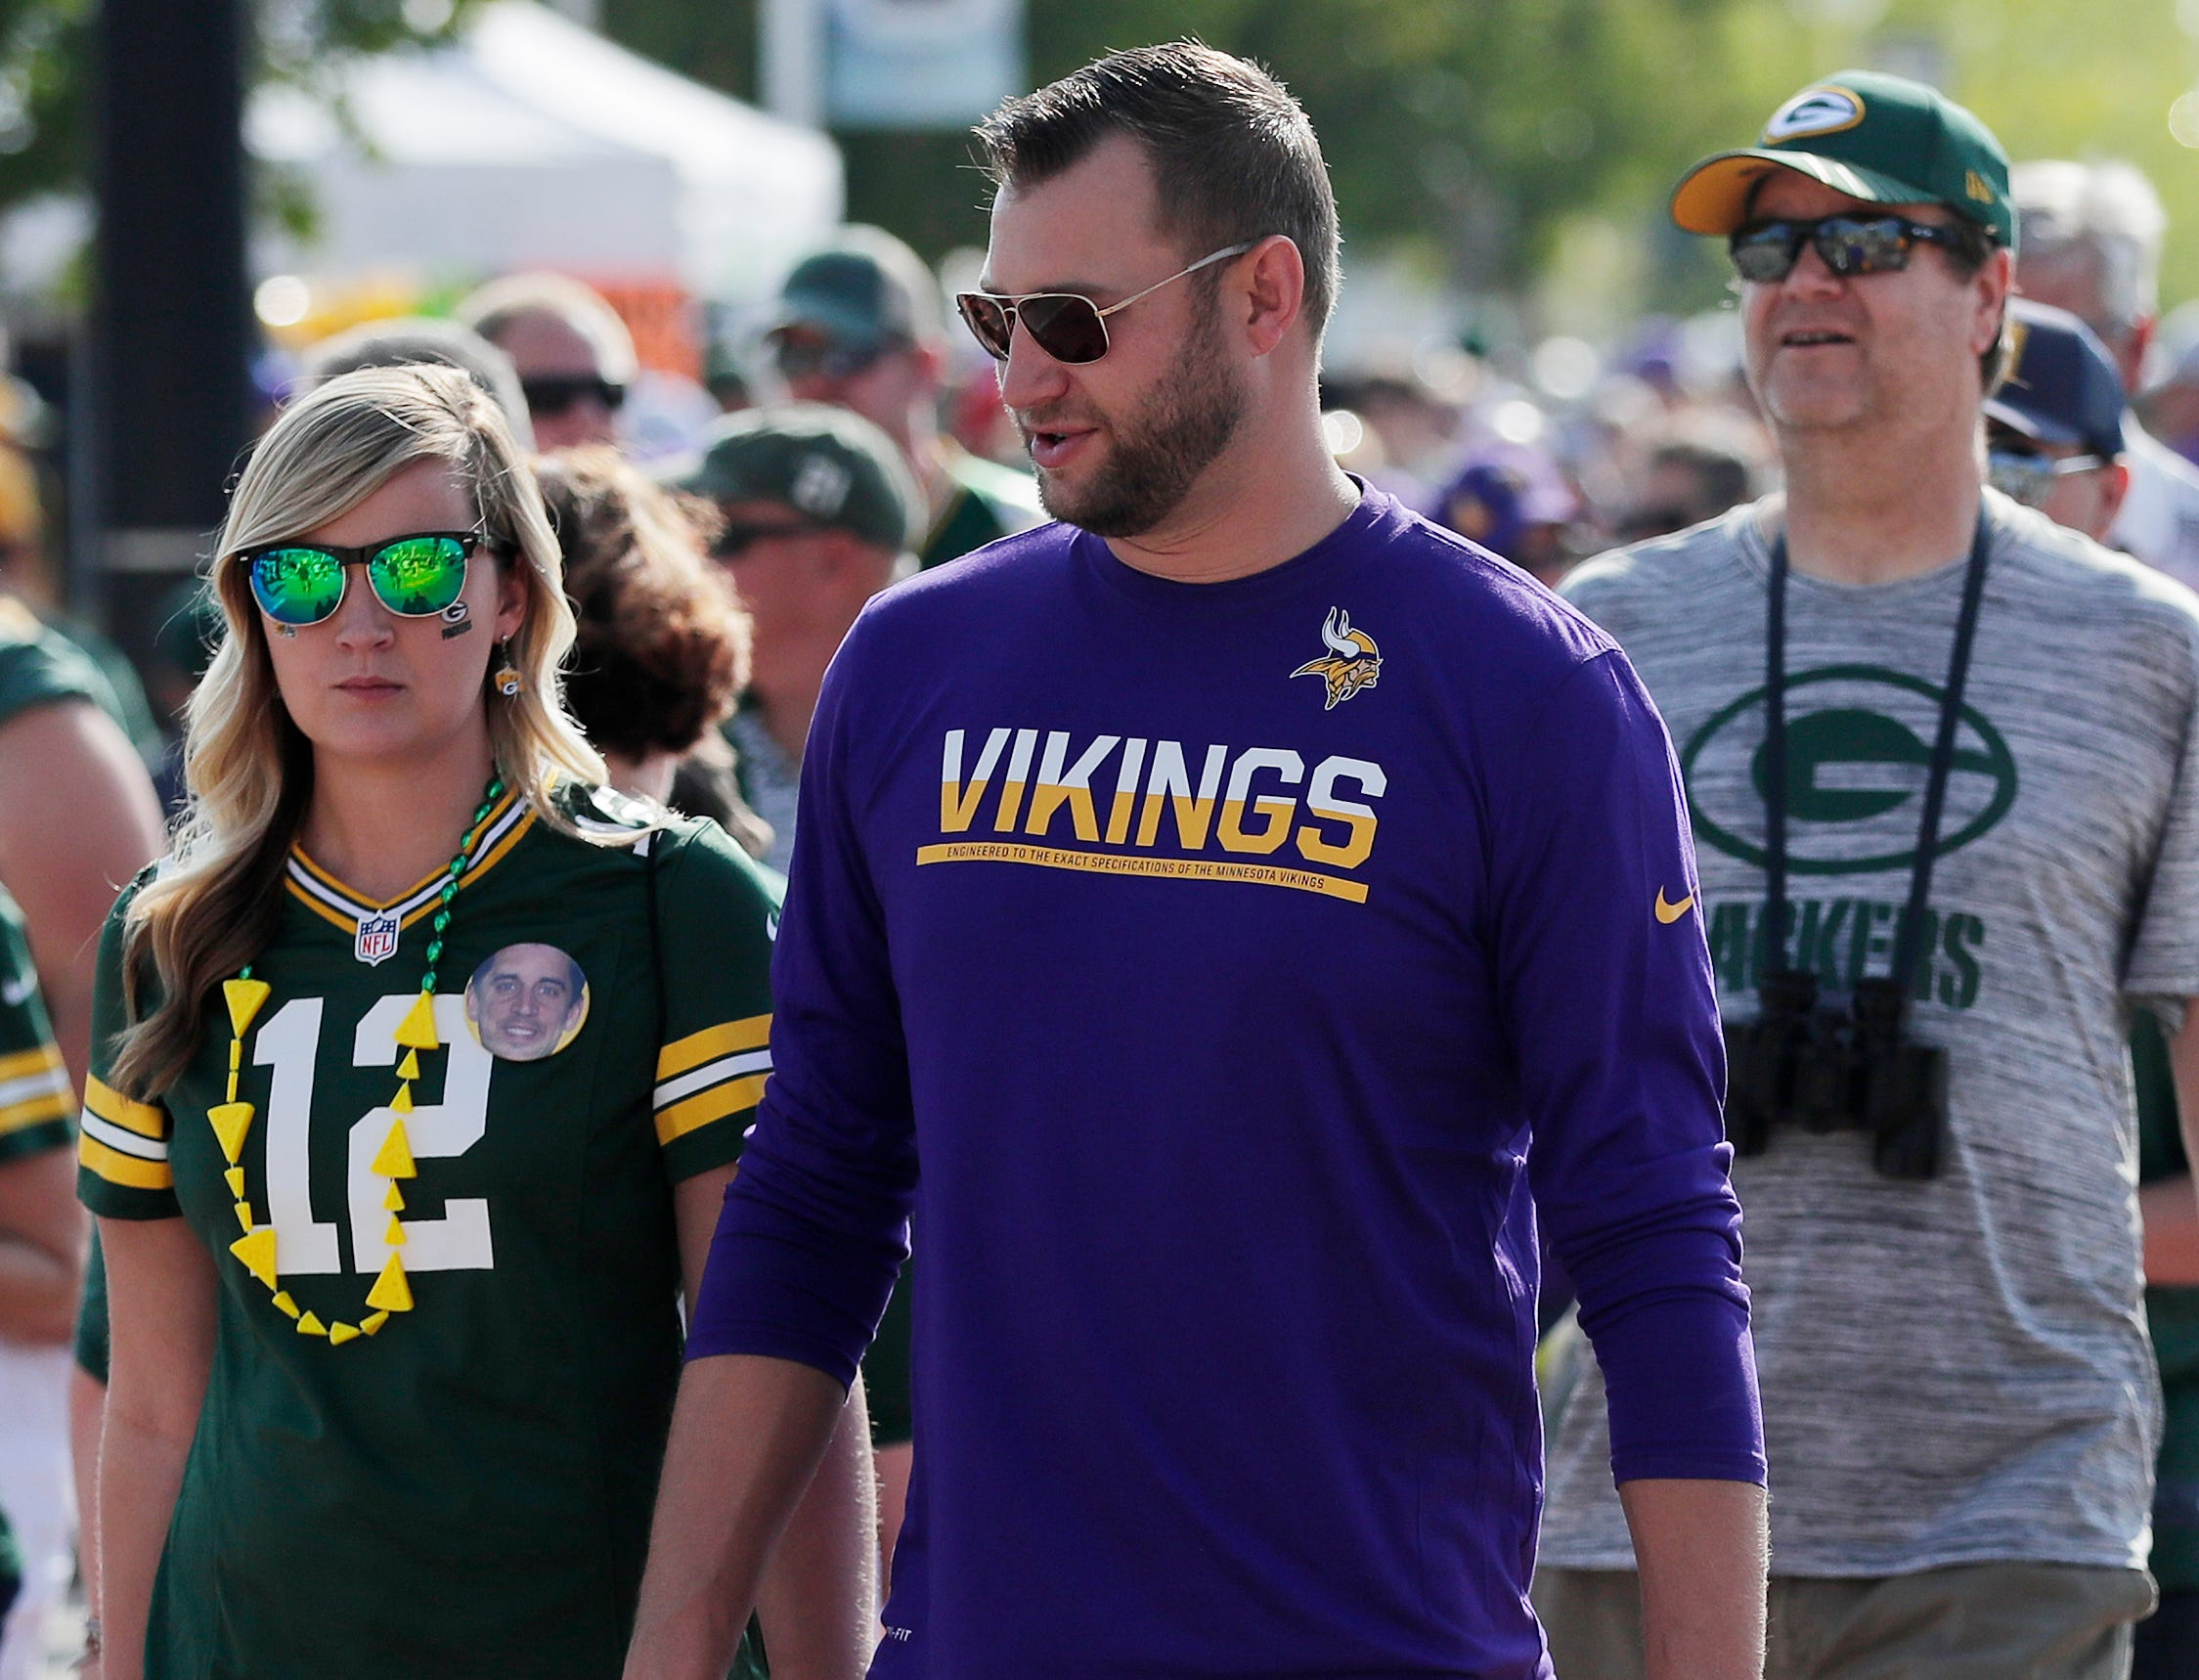 Packers and Vikings fans tailgate outside Lambeau Field on Sunday, September 16, 2018 in Green Bay, Wis.